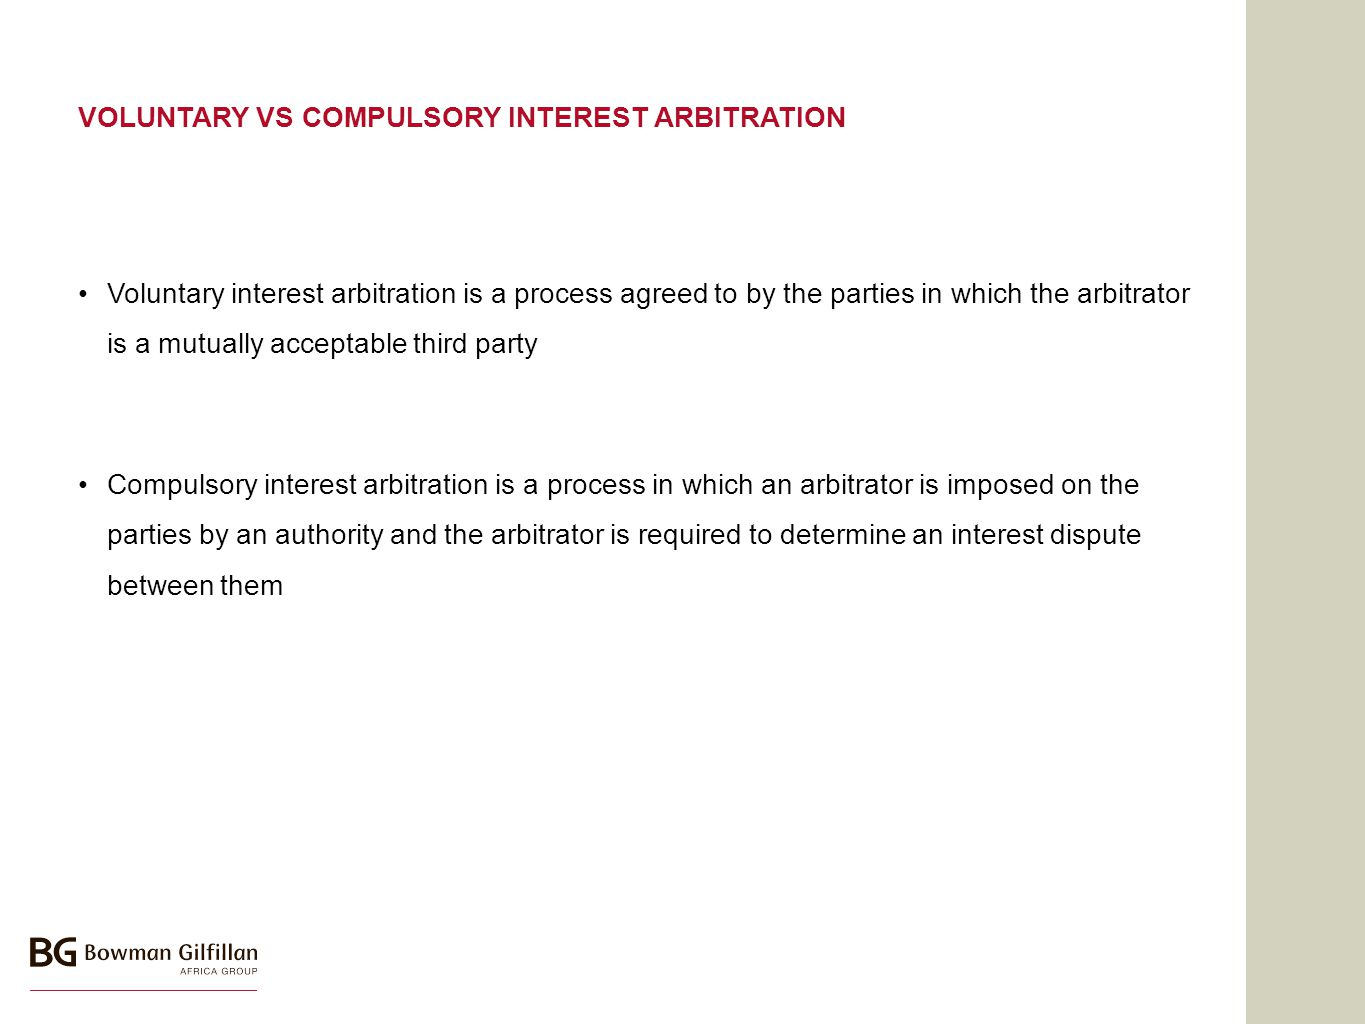 VOLUNTARY VS COMPULSORY INTEREST ARBITRATION Voluntary interest arbitration is a process agreed to by the parties in which the arbitrator is a mutually acceptable third party Compulsory interest arbitration is a process in which an arbitrator is imposed on the parties by an authority and the arbitrator is required to determine an interest dispute between them